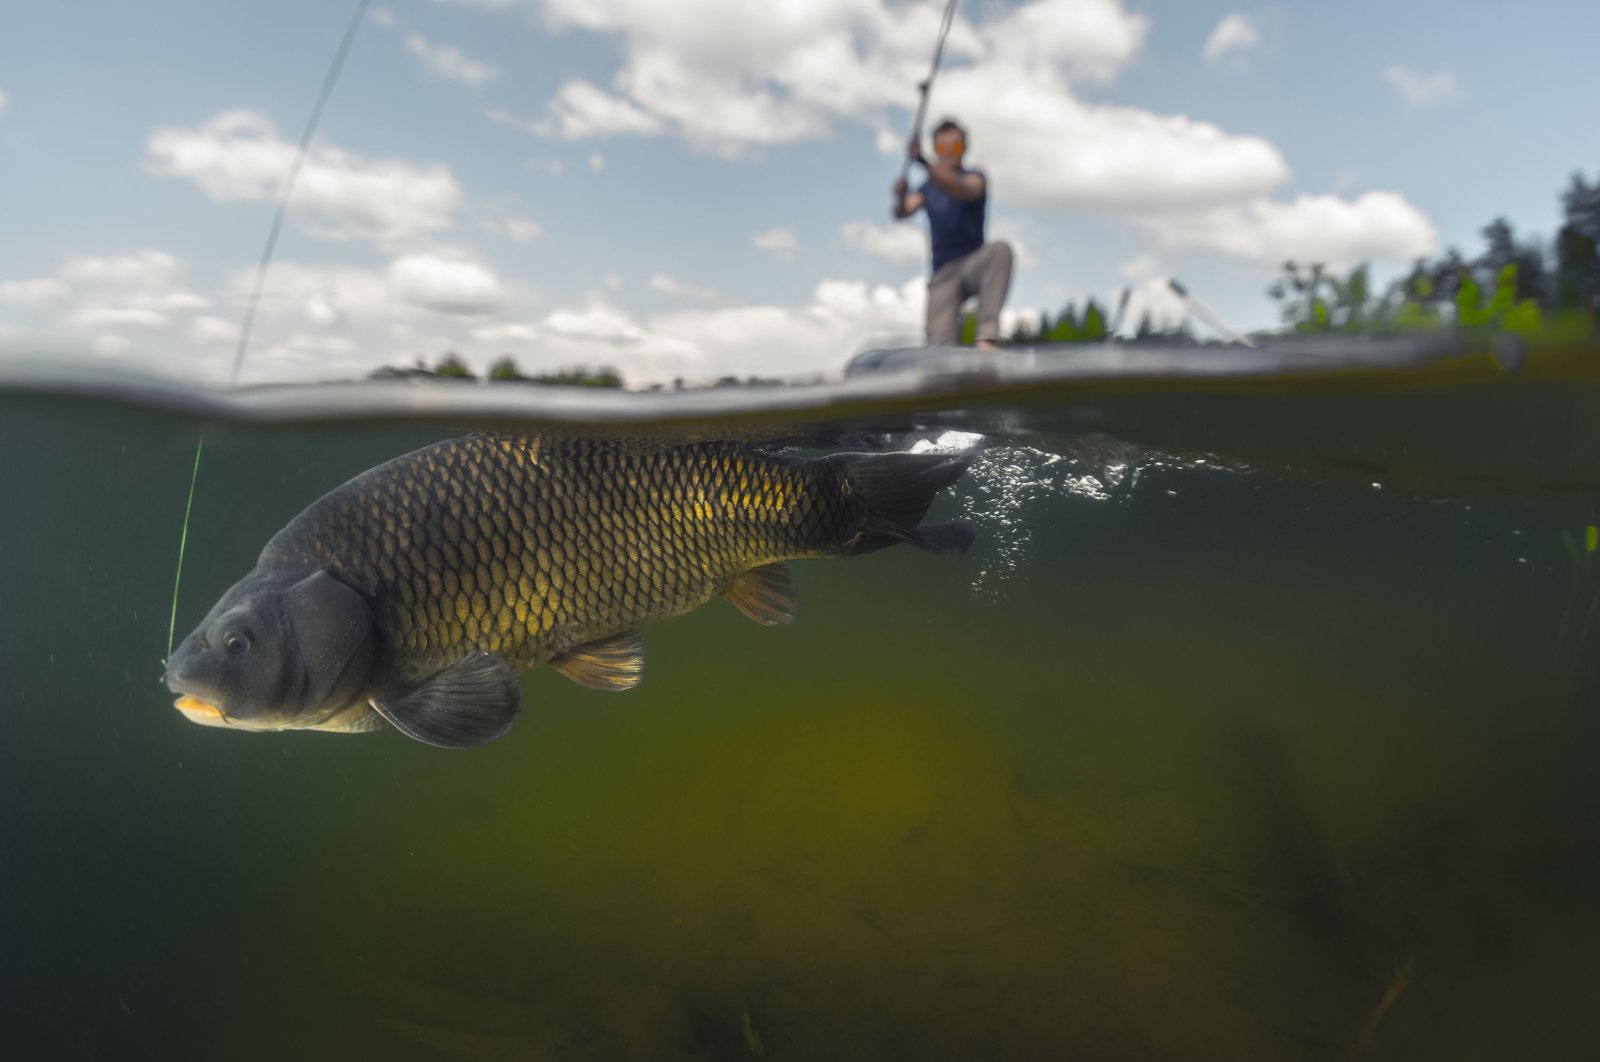 A split shot shows an underwater view of a fish biting the bait of a man fishing on a lake. (Shutterstock Photo)